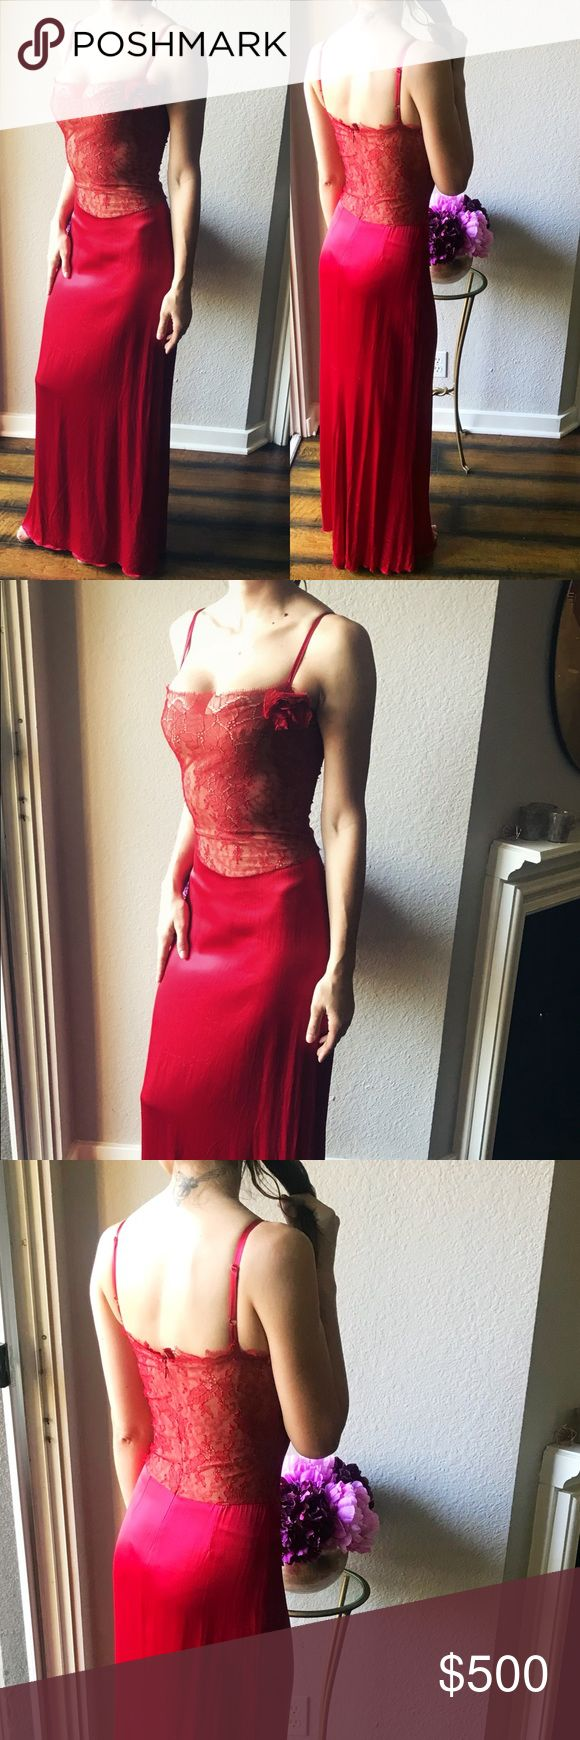 """Ruby Red Satin Gown with Lace Long ruby red dress with lace bodice and satin skirt. It has a built in bra. The dress says it is size 1. I would say that is equivalent to size small. I would recommend it for bra sizes 32 and 34 unto C cup. Hidden back zipper. This dress was used once. Length is approx 54"""" without straps. Straps are adjustable. I am selling this for a friend so I can't do trades. Dresses Maxi"""